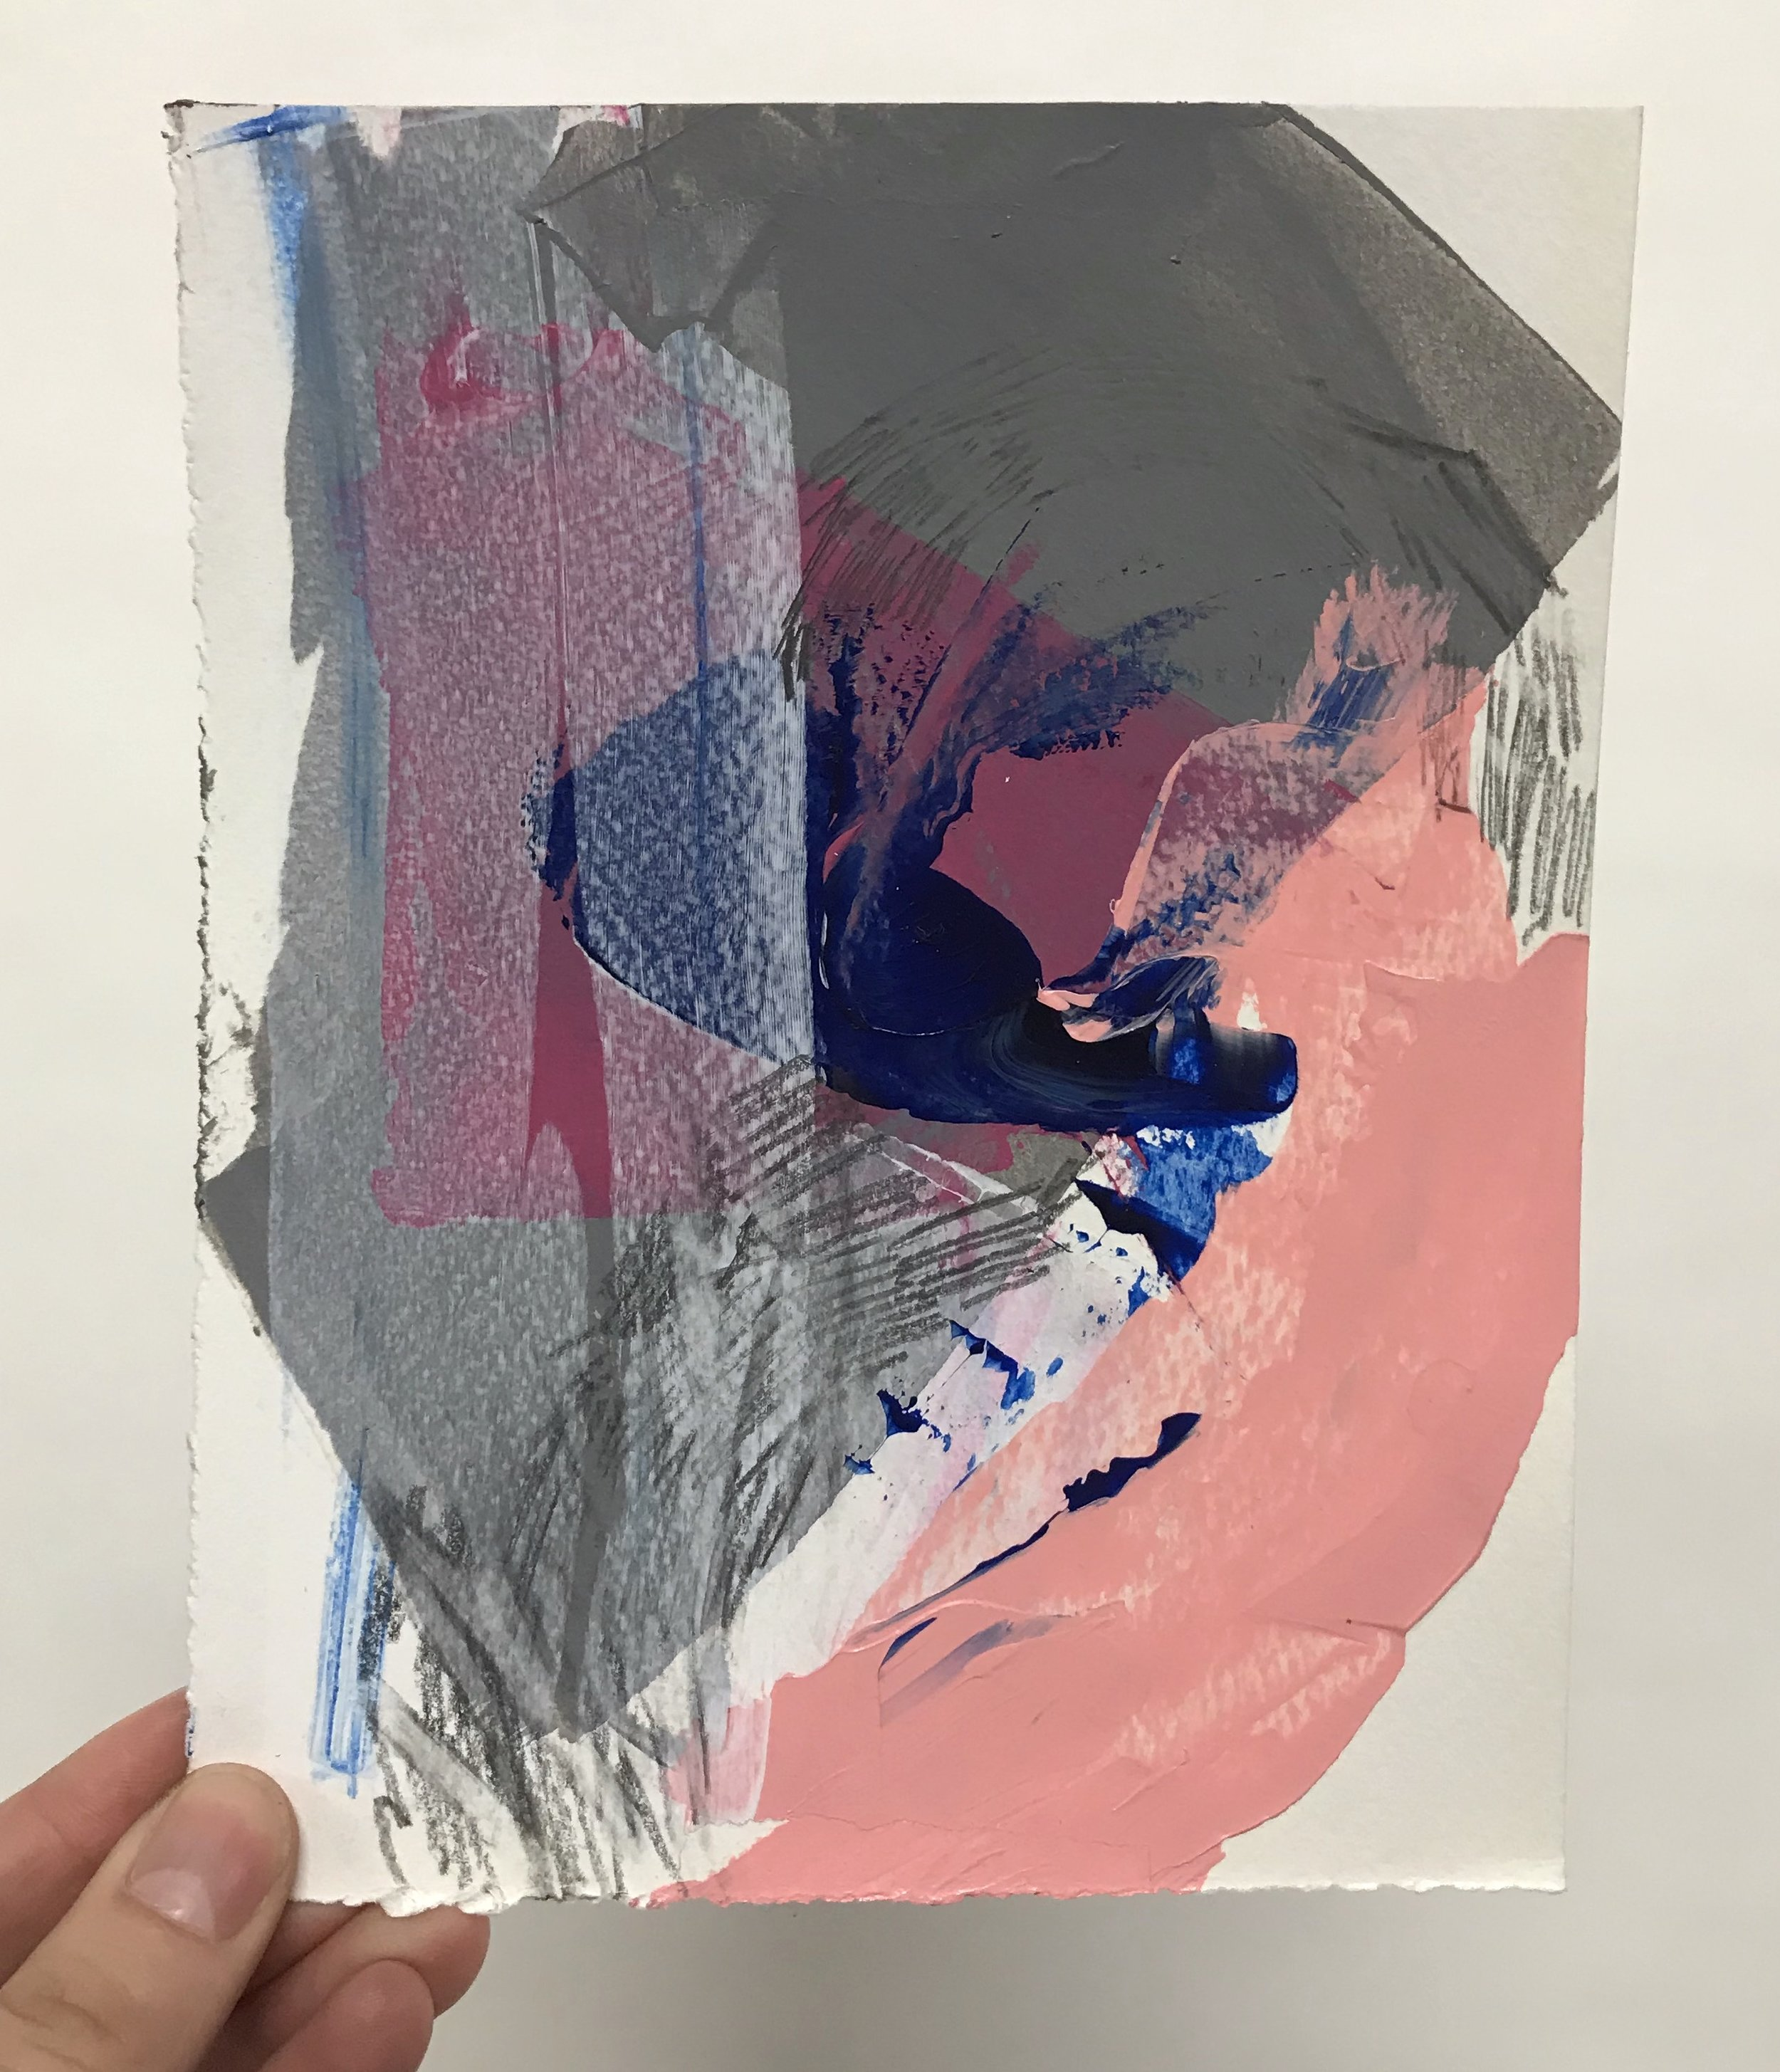 """Lure #14, 5.5""""x7"""", acrylic + graphite on paper, 2017, SOLD"""